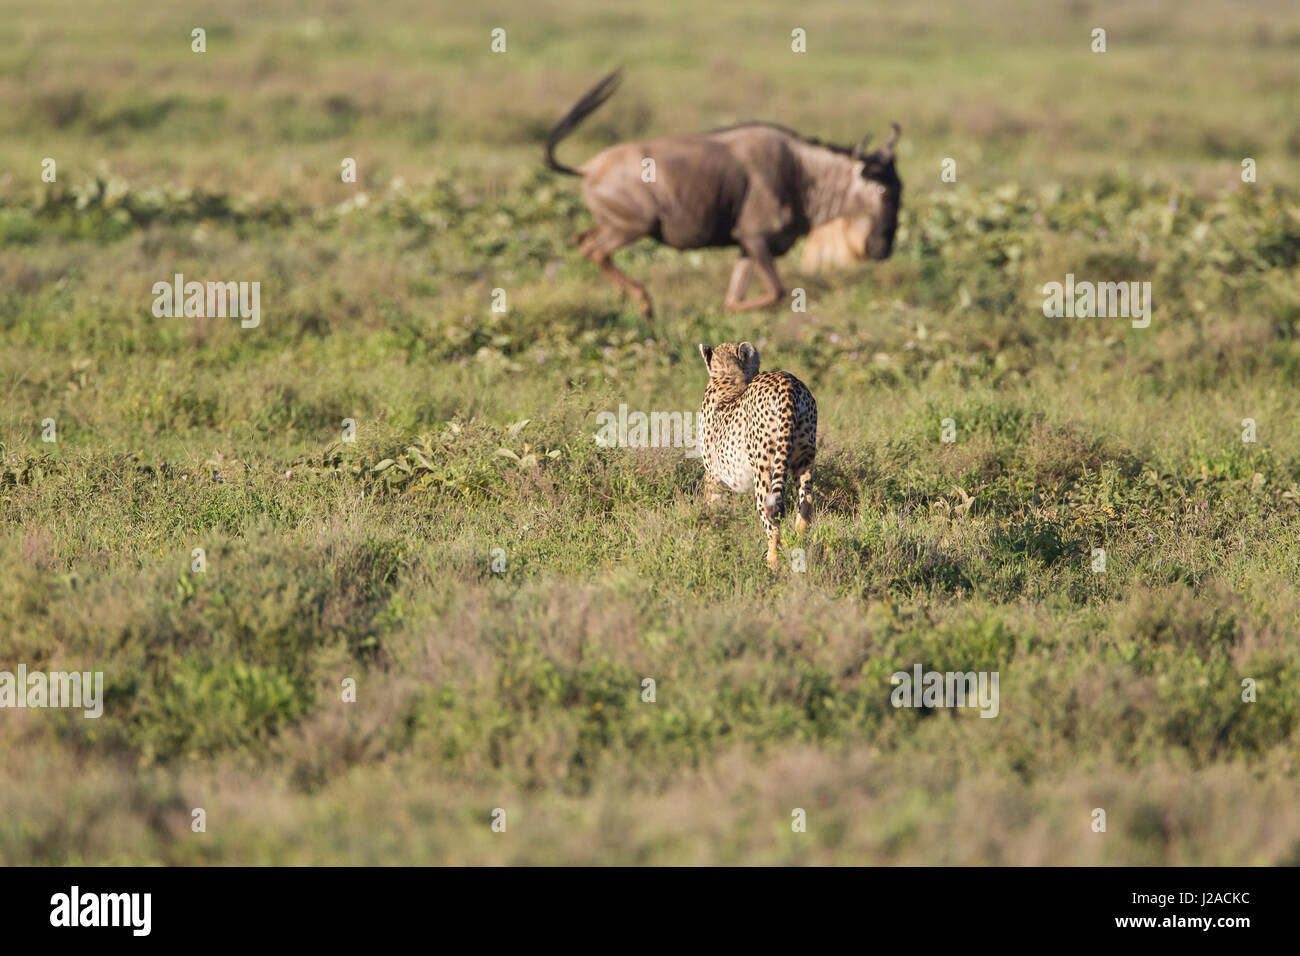 A cheetah closely stalks a wildebeest running by on migration - Stock Image